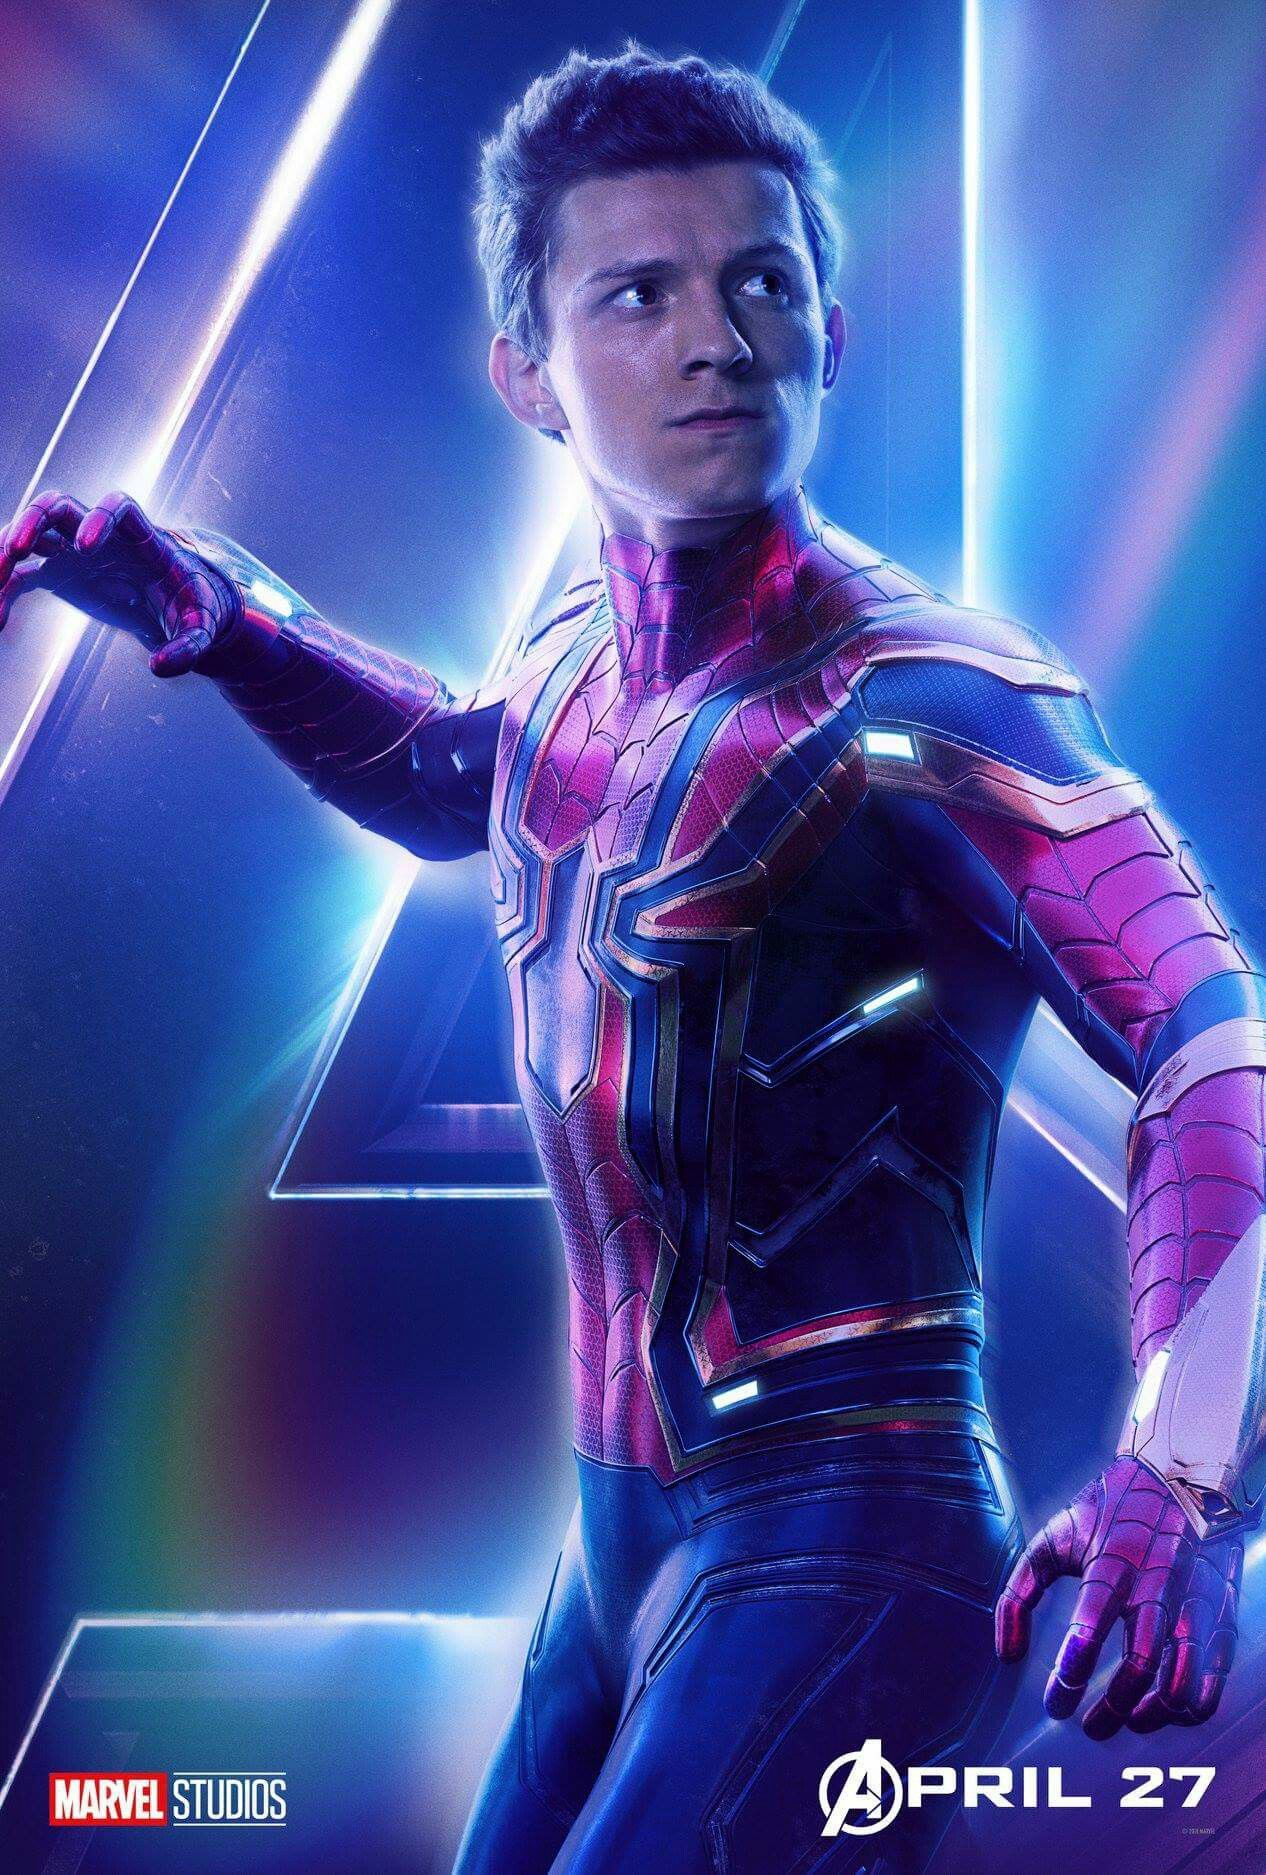 Tom Holland As Peter Parker Iron Spider Avengers Infinity War Man Circuit Superhros Marvel Comics Logostore 2018